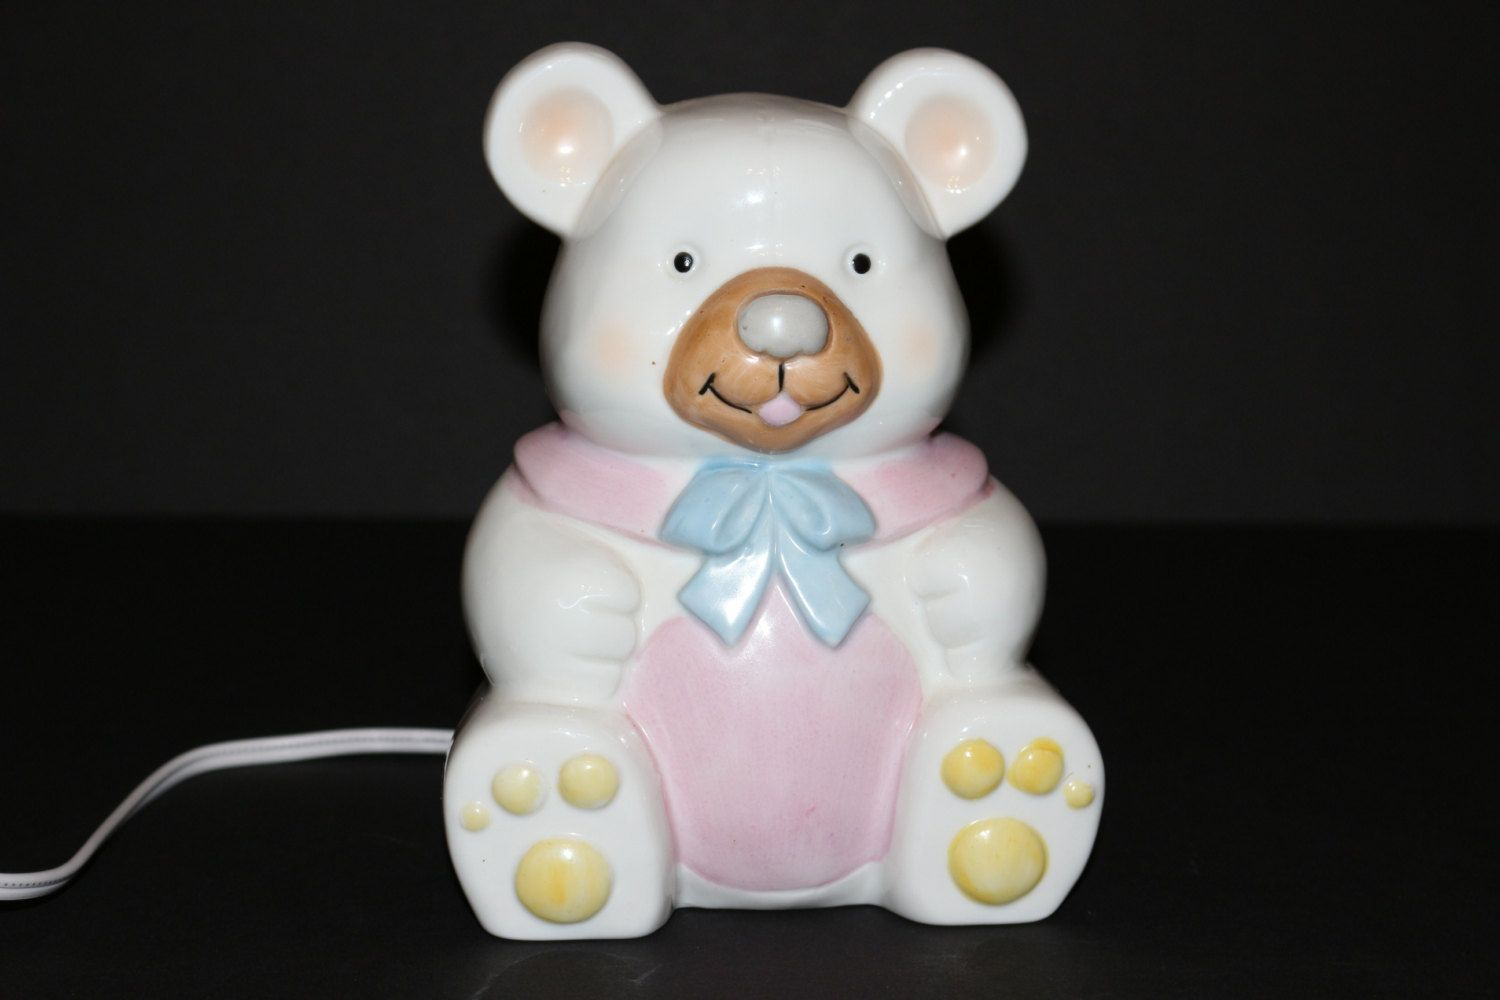 Vintage Lefton China Teddy Bear Nursery Lamp 1985 Childs Night Light White Pink Newborn Baby Shower Gift Collectible by TresorsEnchantes on Etsy